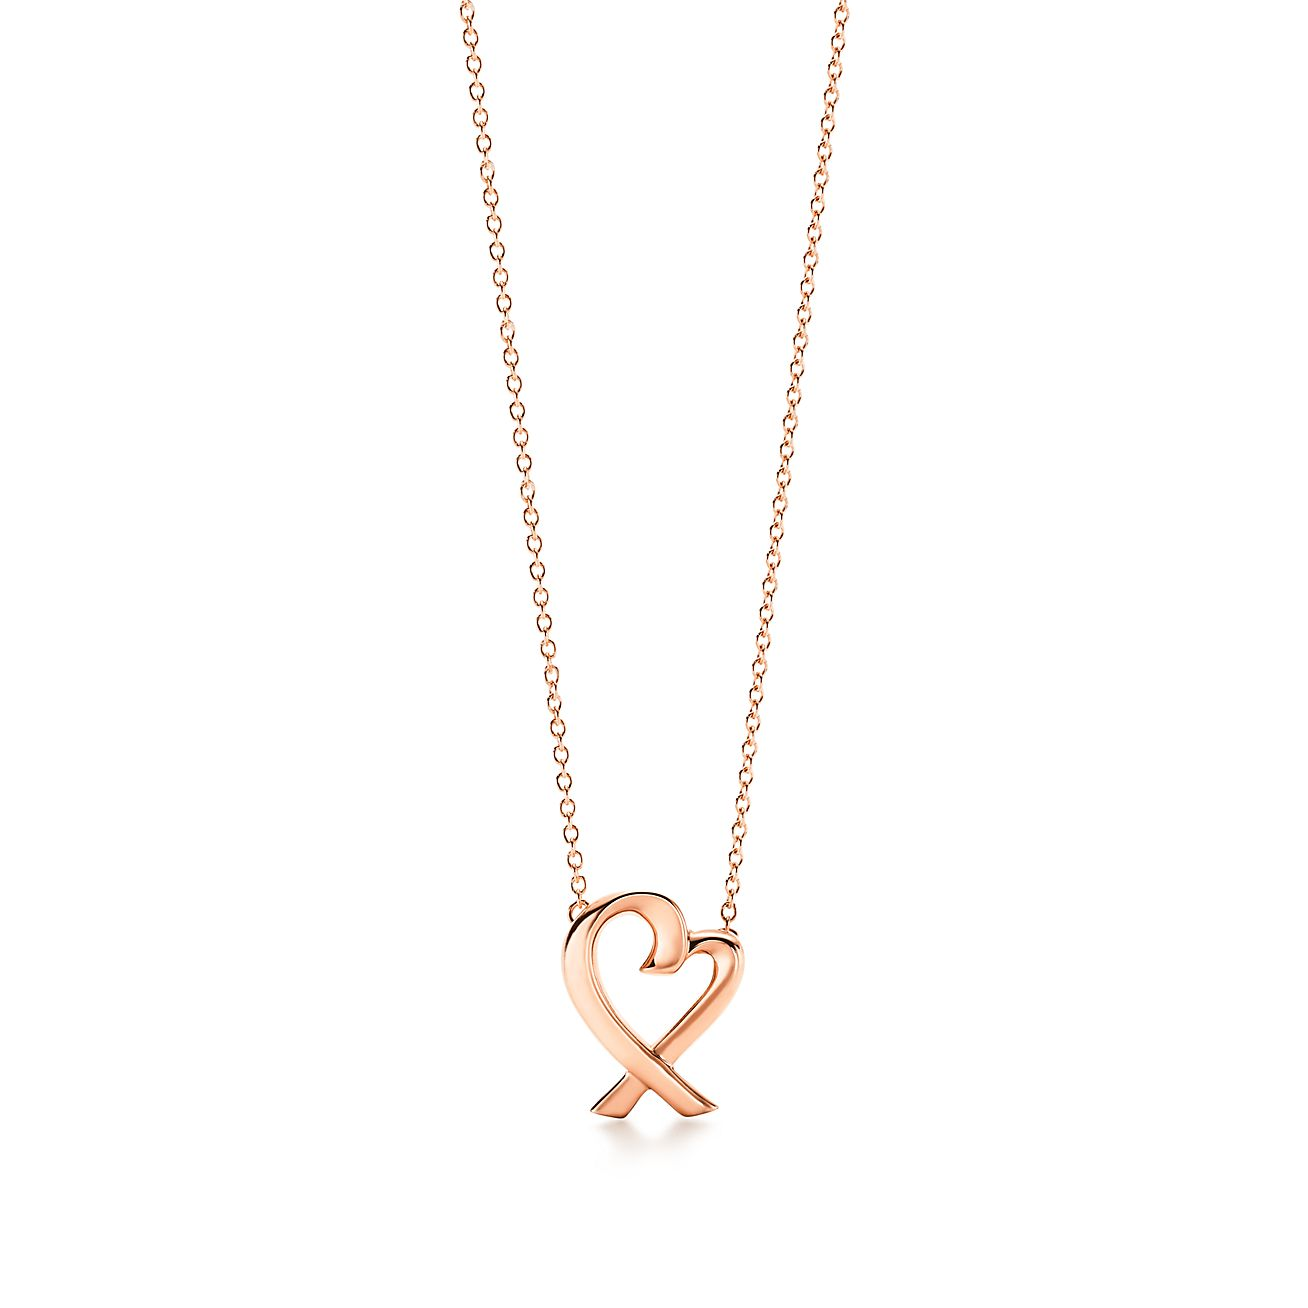 Palomas Venezia Goldoni heart pendant in 18k rose gold, small Tiffany & Co.